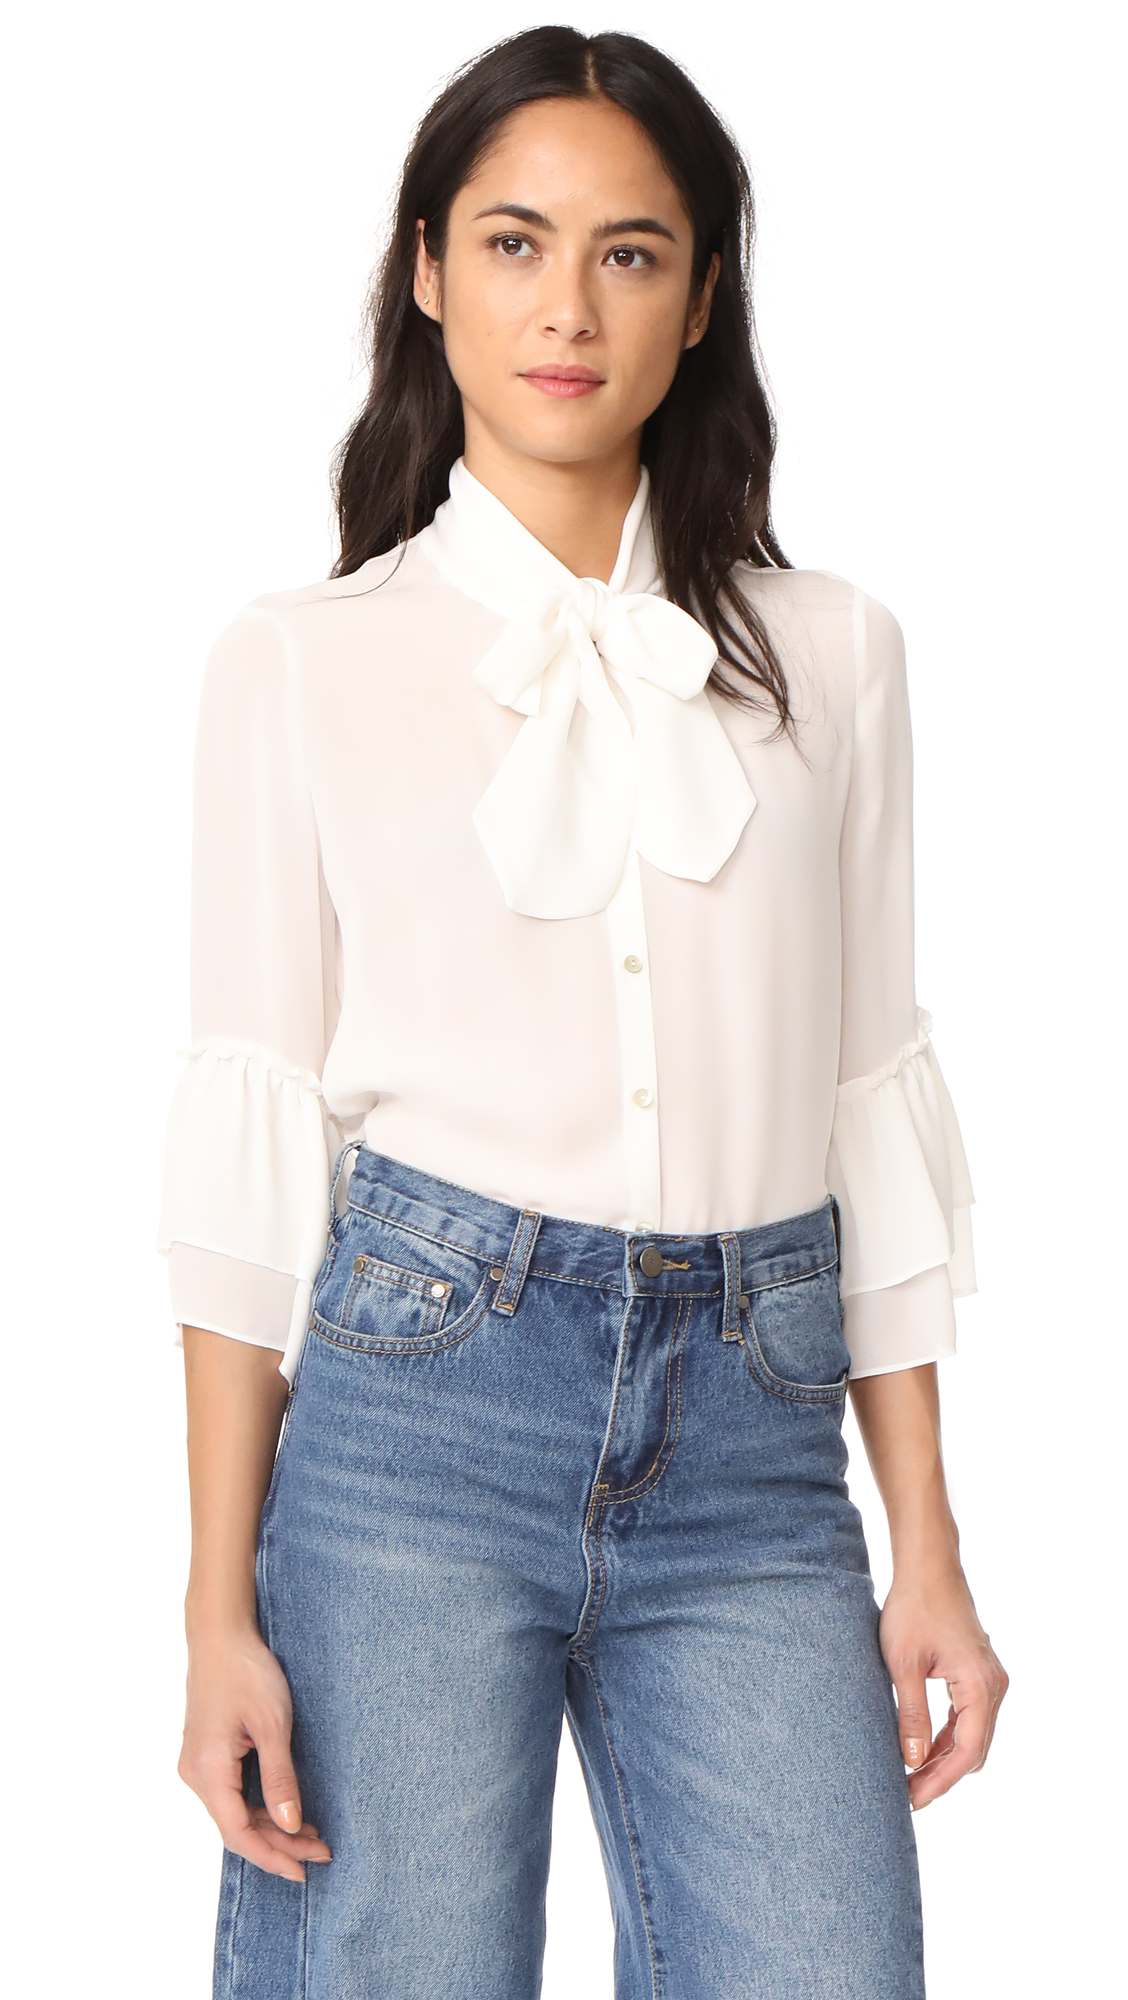 LAGENCE Desa Bow Tie Blouse - Ivory